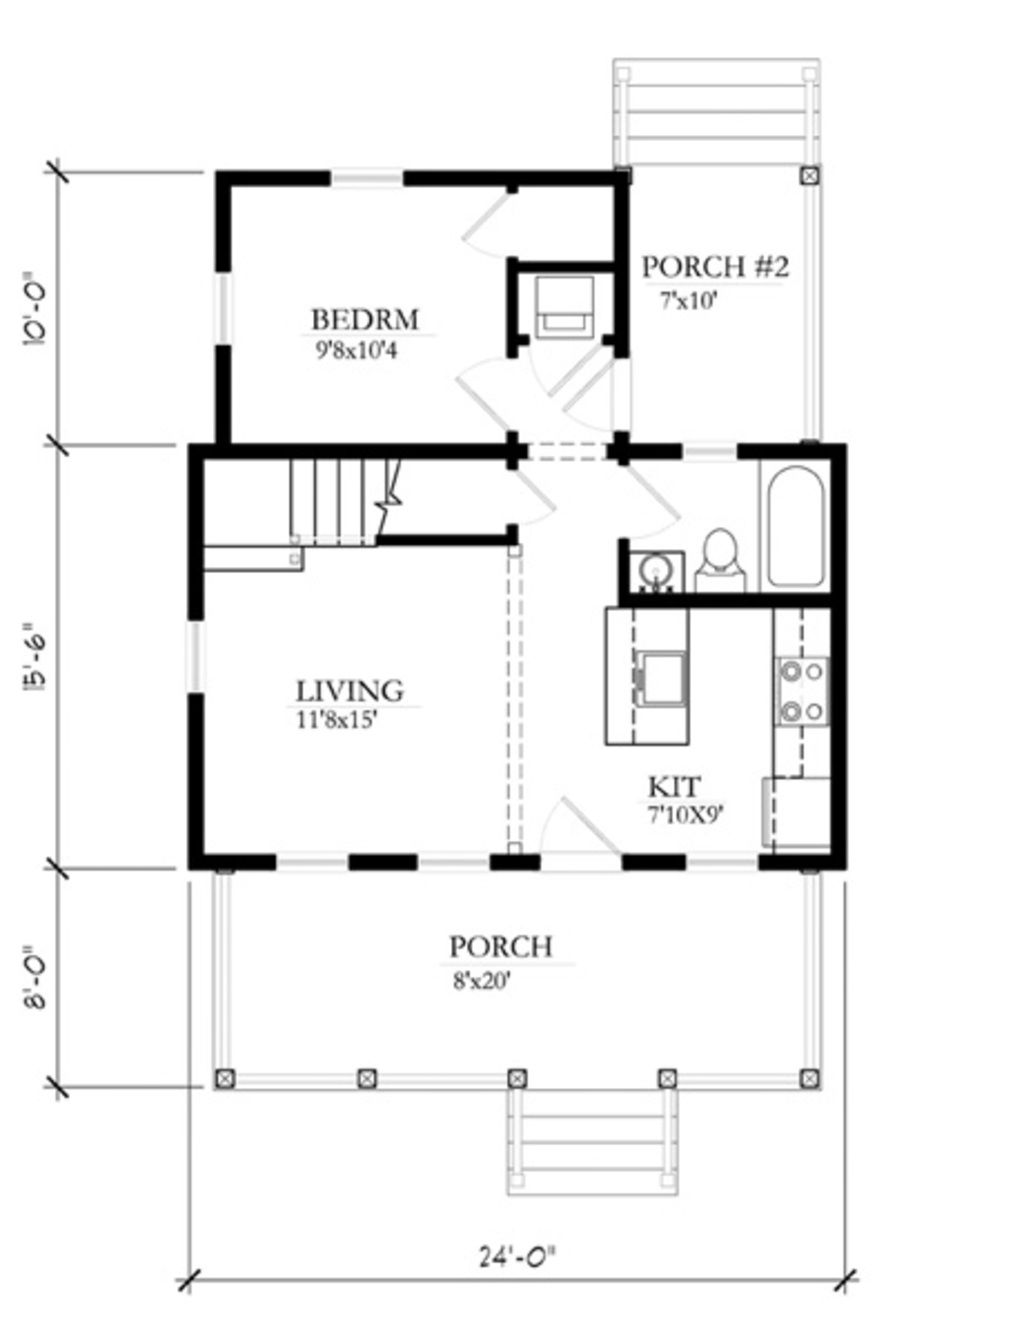 Loft over kitchen eric moser cottage small houses for Eric moser farmhouse plans